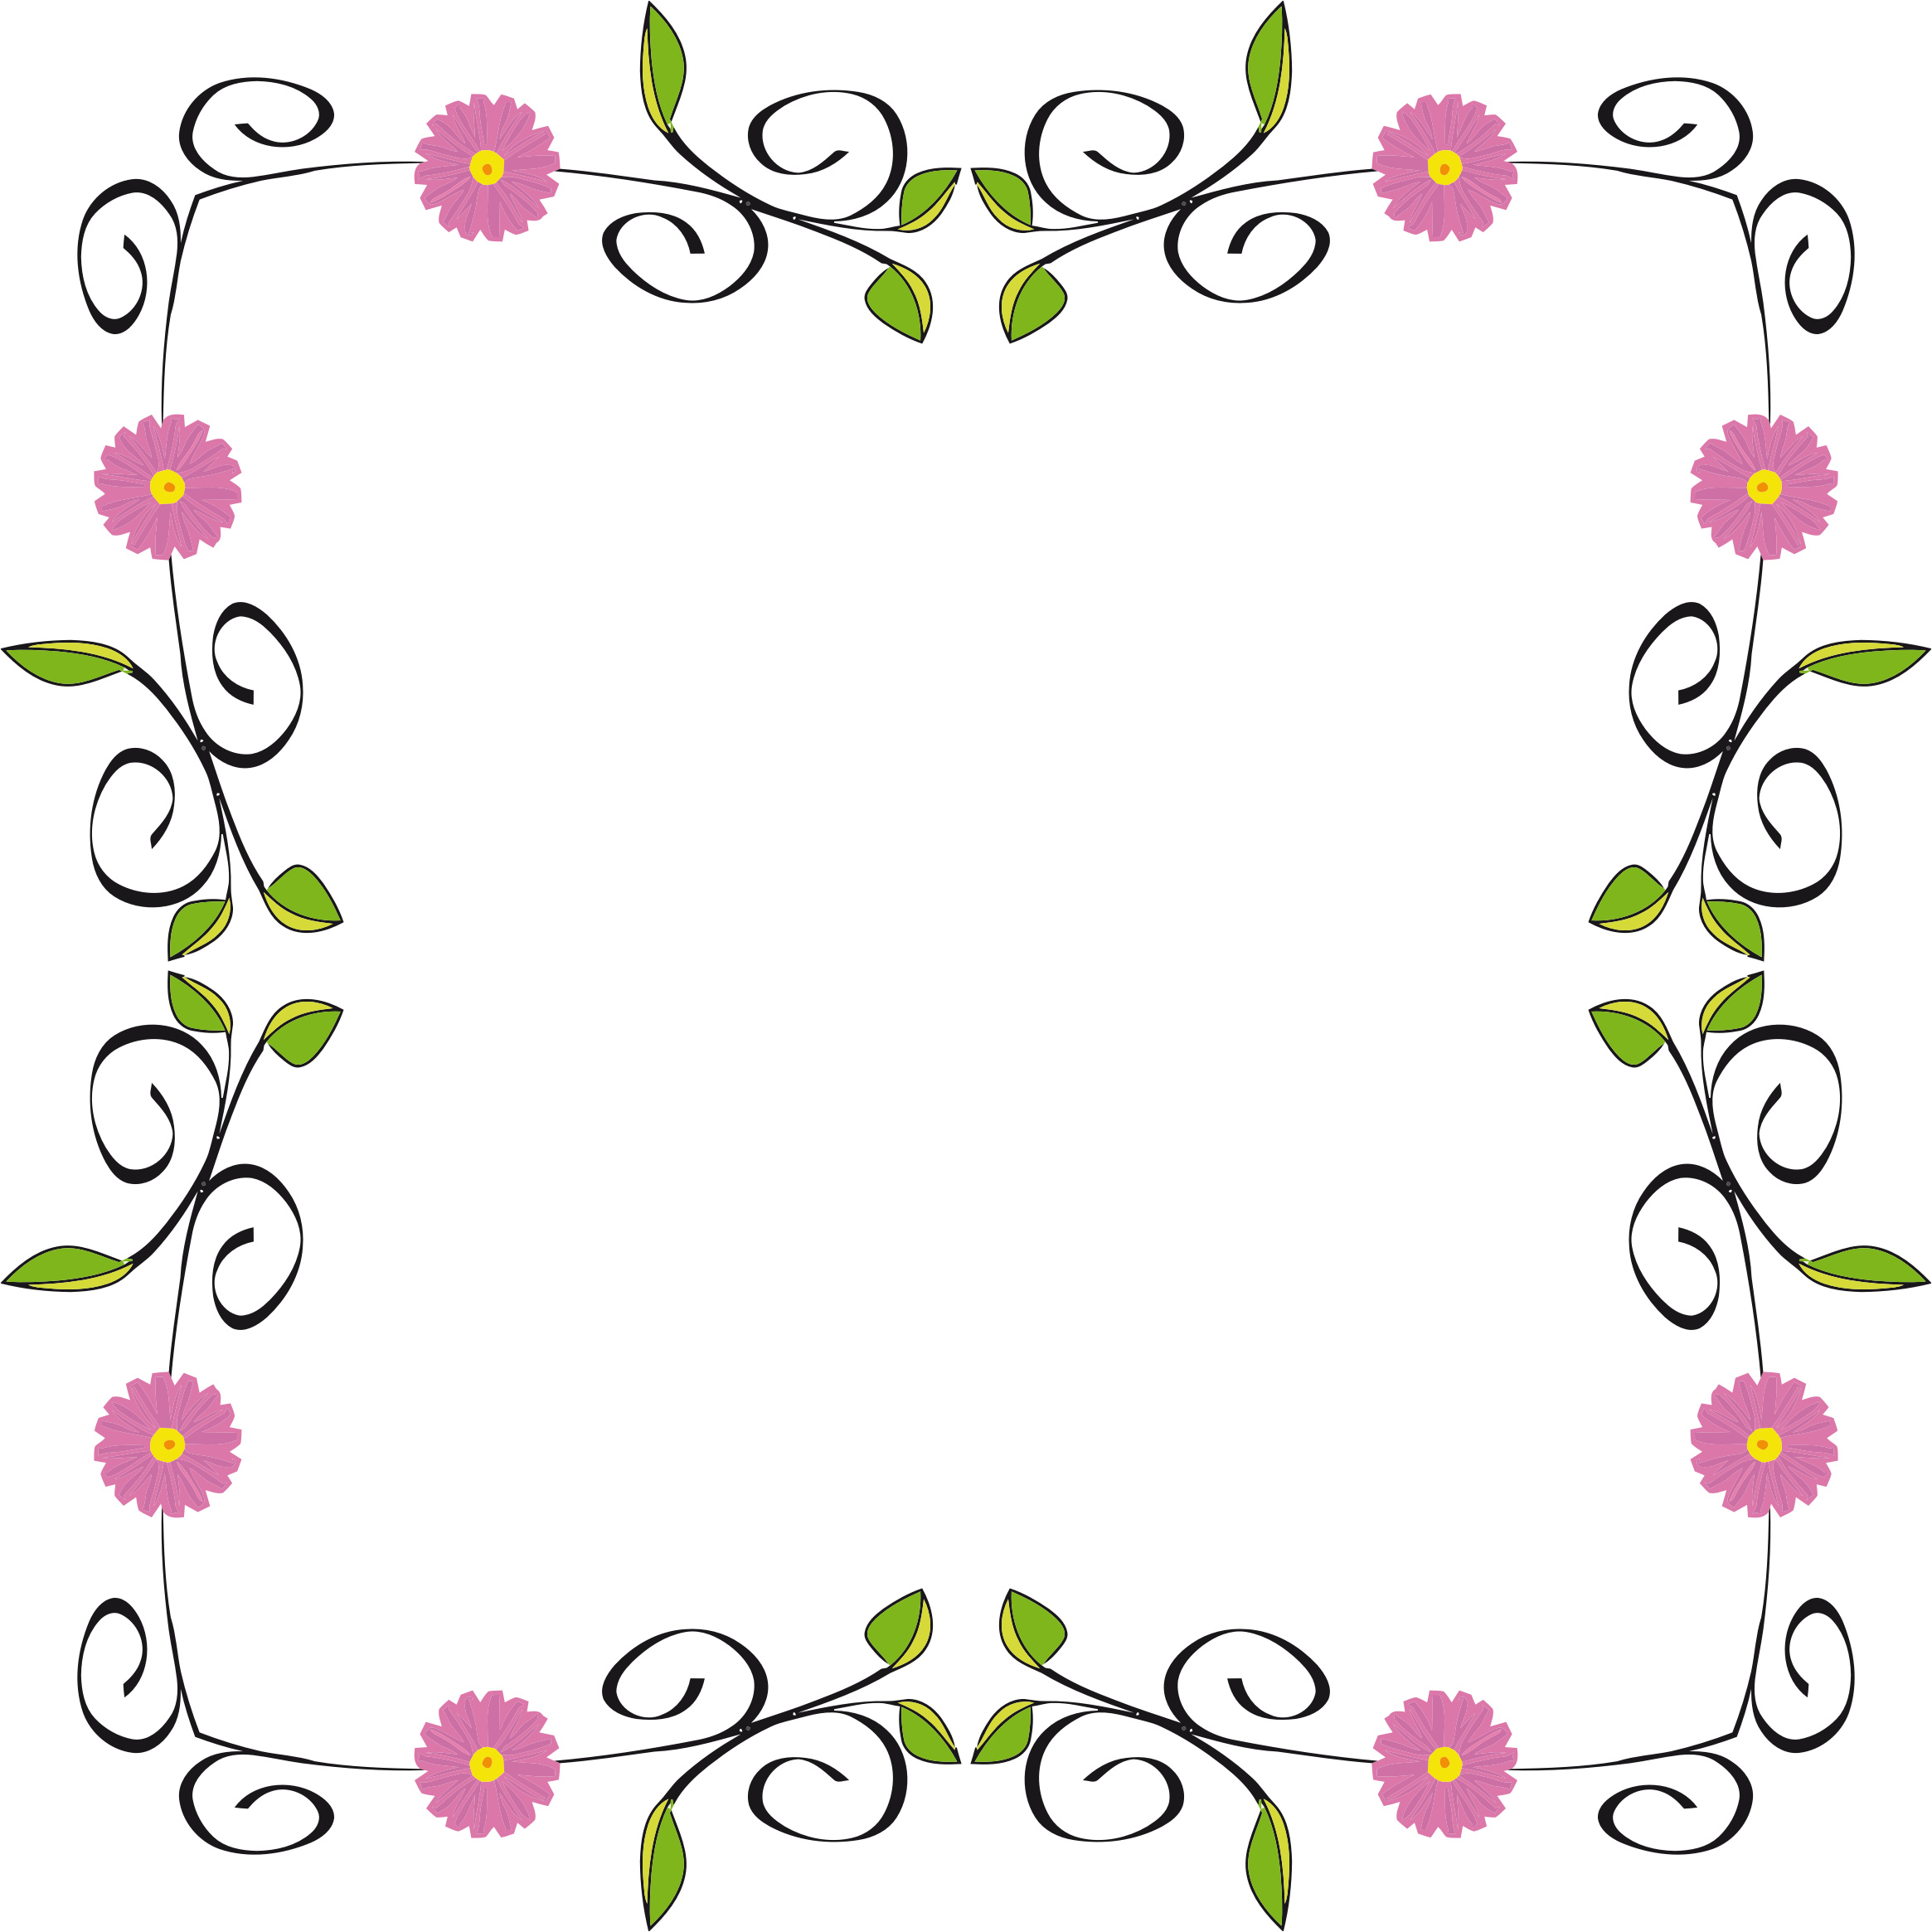 image library Floral borders clipart. Border extended big image